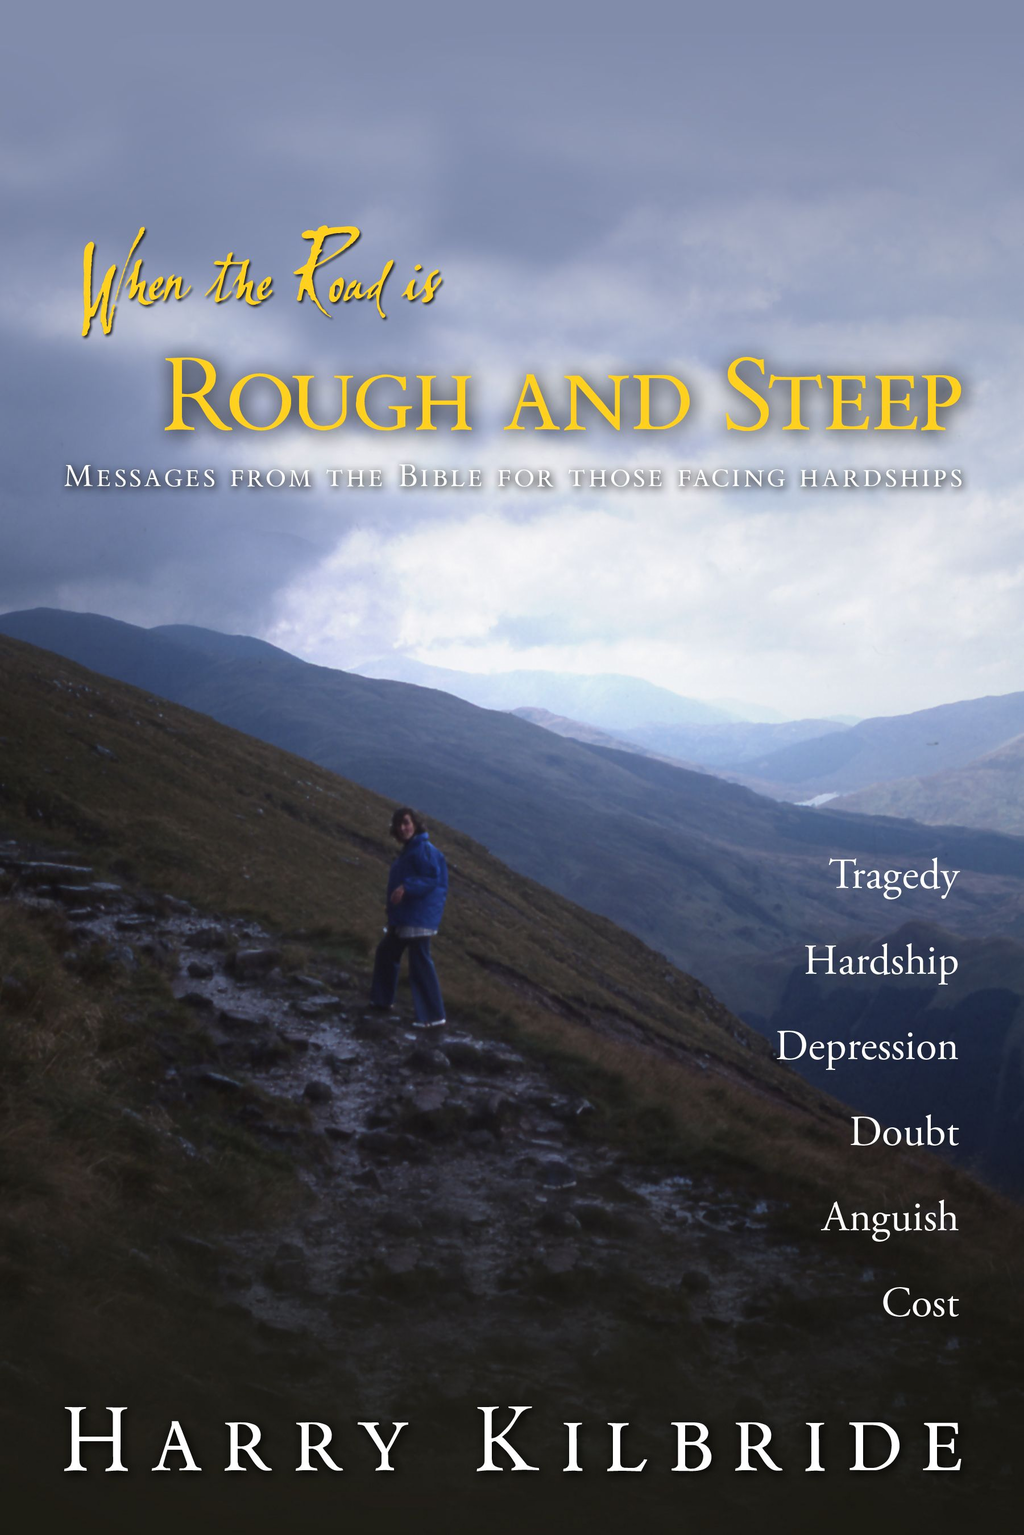 When the Road is Rough and Steep: Messages from the Bible for those facing hardships